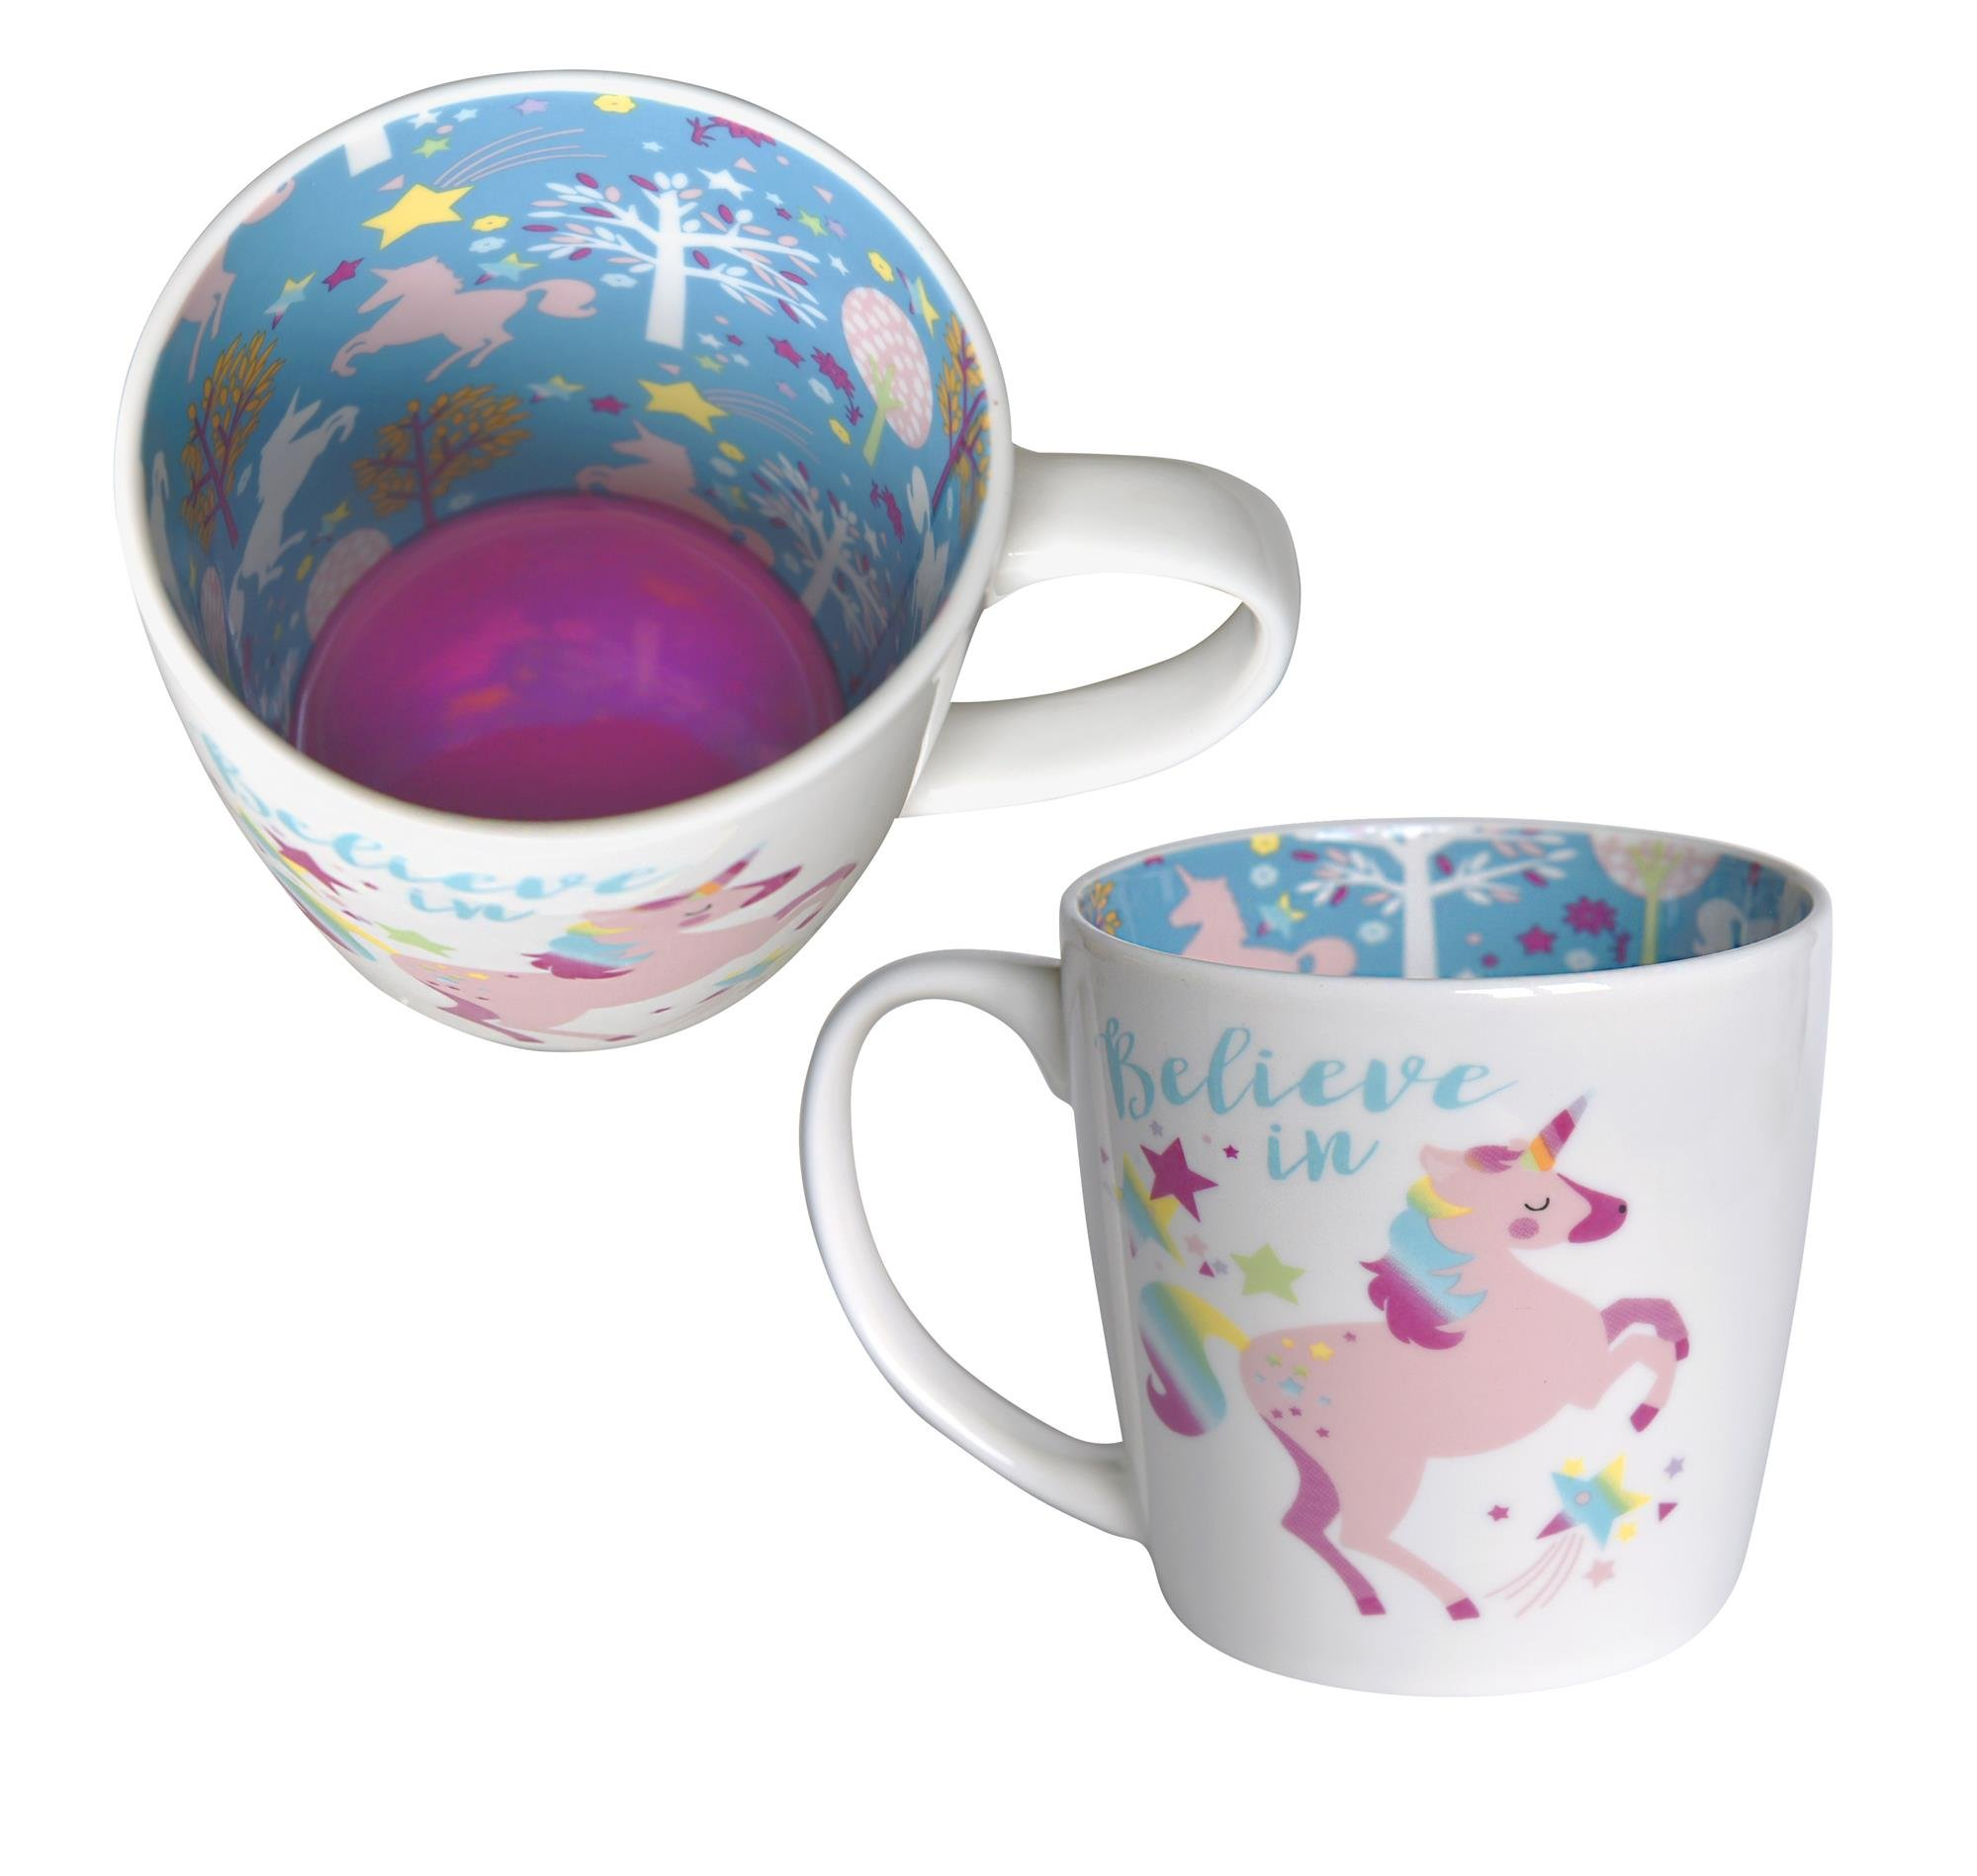 Mug-Ceramic-TeaCoffee-Inside-Out-Mug-BELIEVE-IN-Unicorns